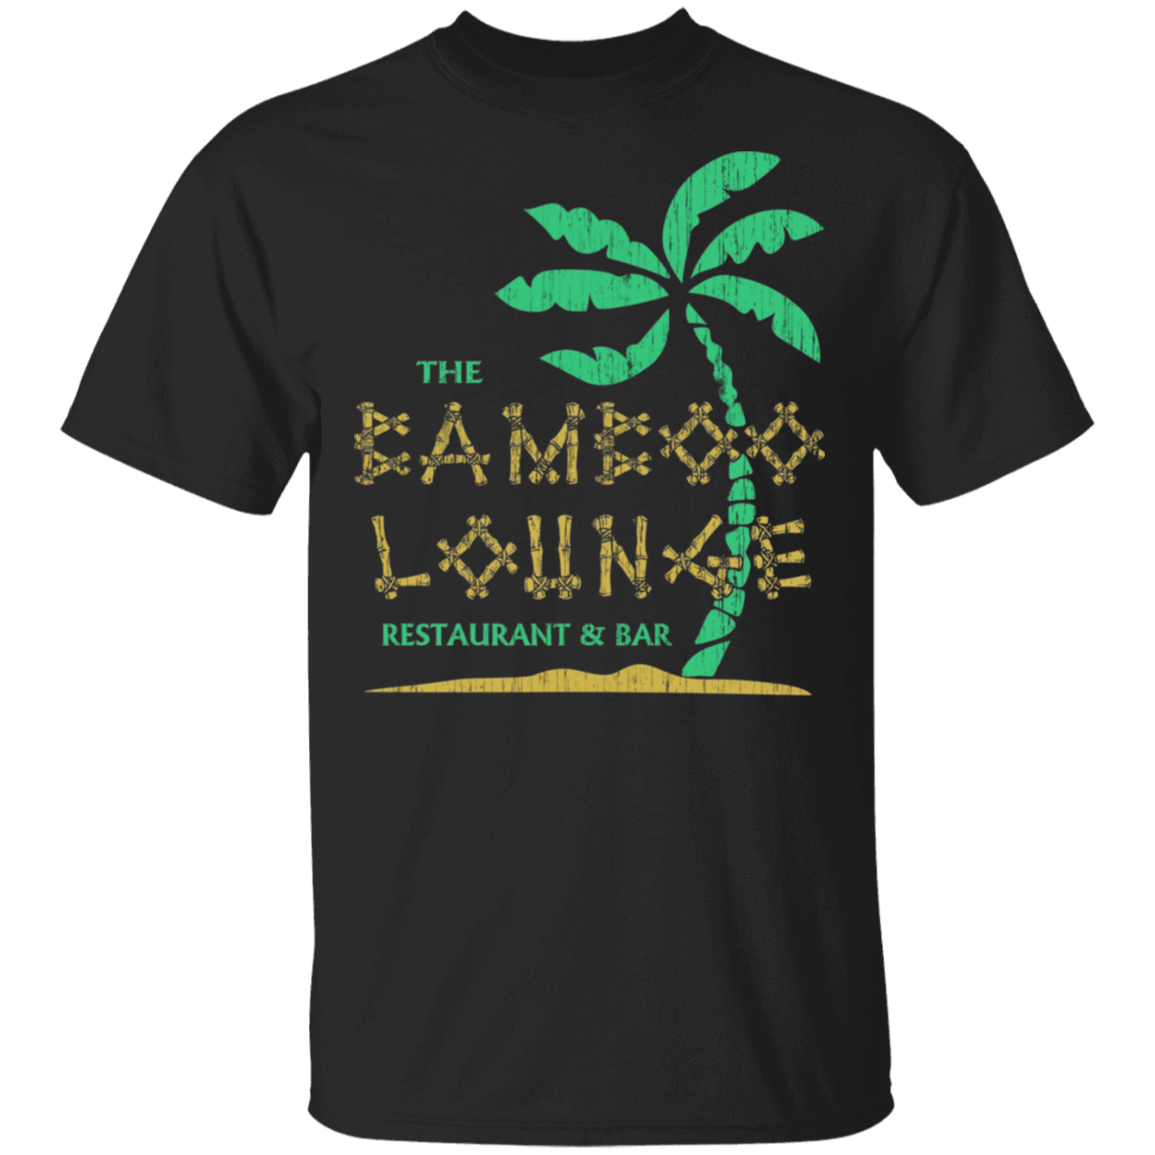 The Bamboo Lounge Restaurant & Bar Goodfellas T-Shirts, Hoodies, Tank 22-113-79712491-252 - Tee Ript